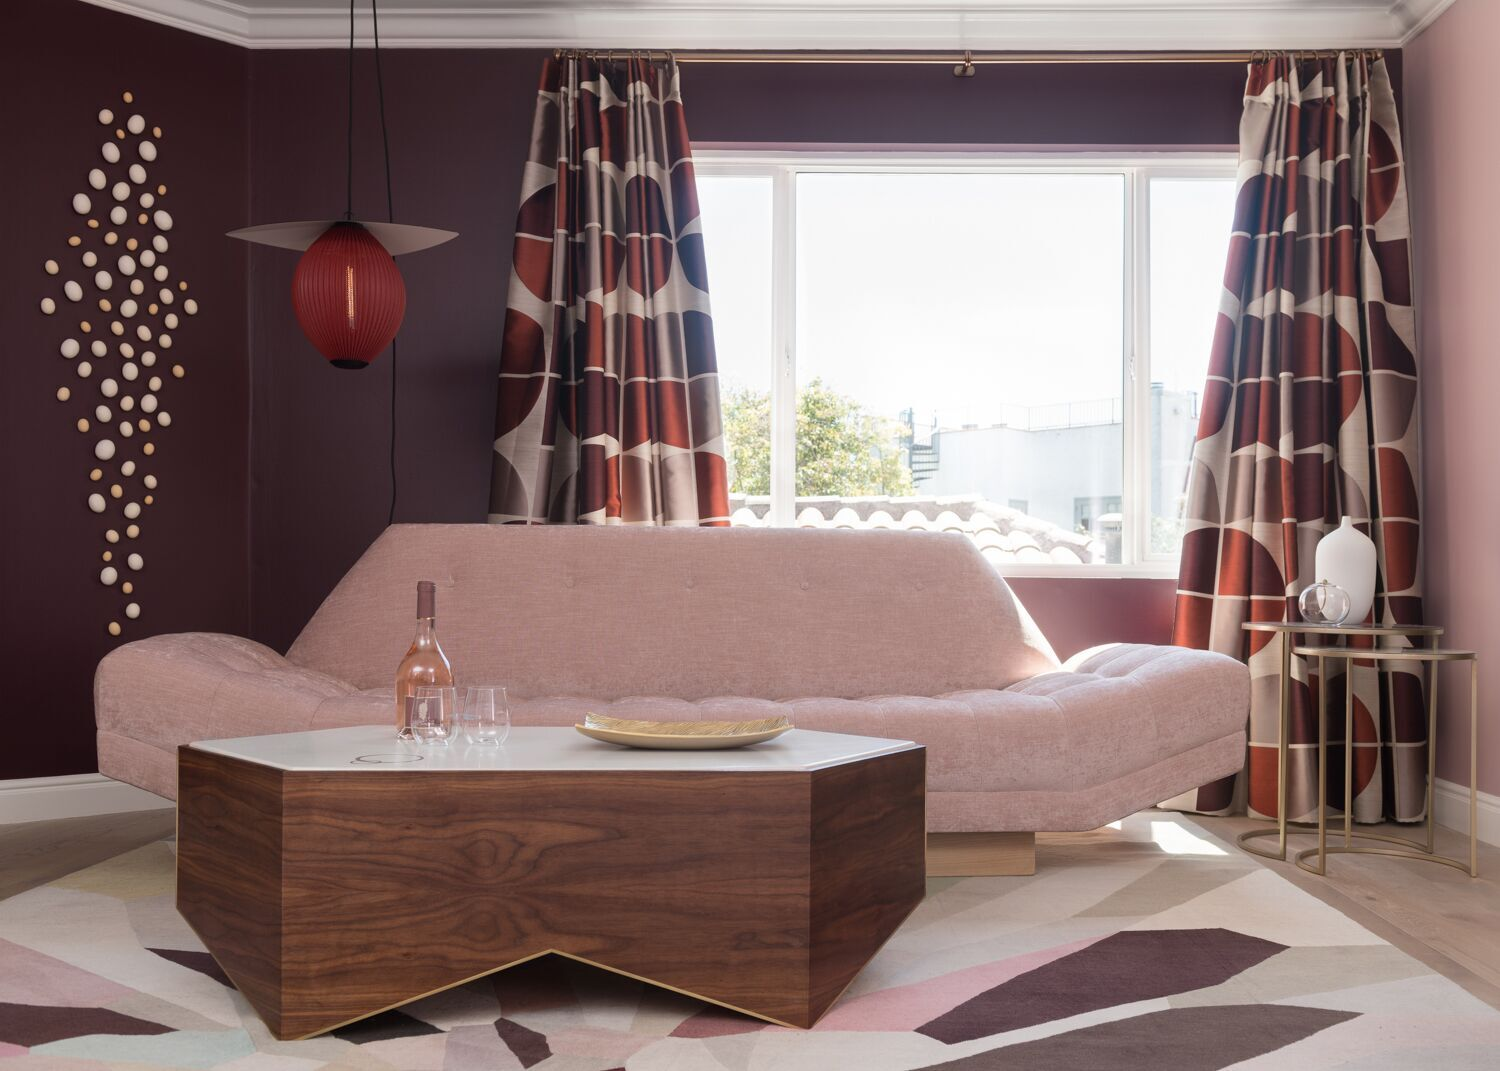 If you plan on taking selfies in this house, best to pose in the Rose Lounge by Melanie Coddington, because the blush and wine colors on the walls make your skin glow. The designer calls the room feminine, but there's also an edge in pieces like the black patent leather handbag with a flashing